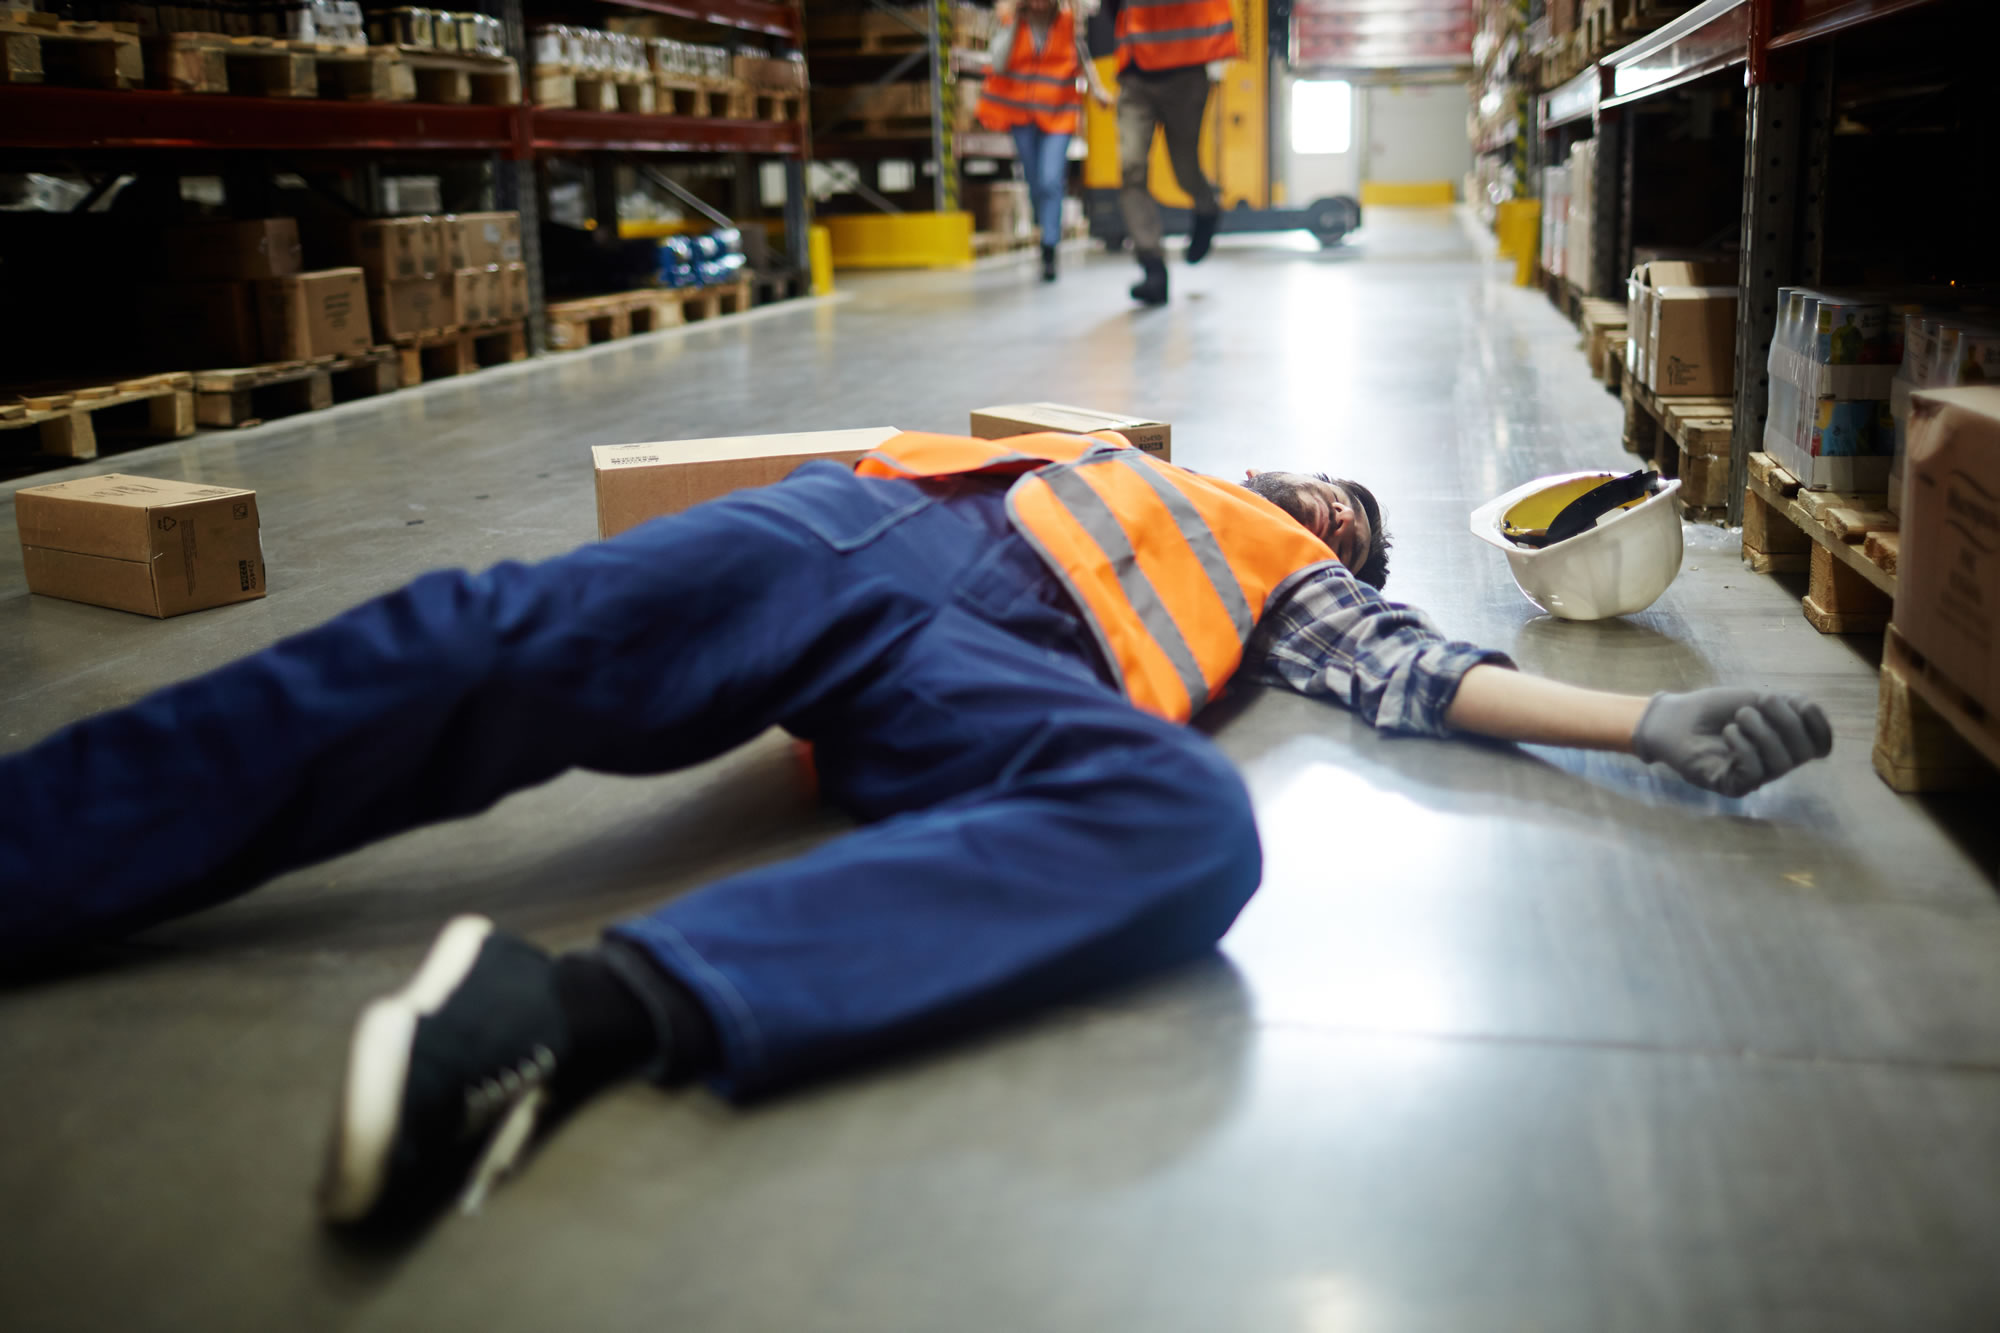 Workplace Slip, Trip or Fall - slip and trip hazards in the workplace, suing employer for negligence